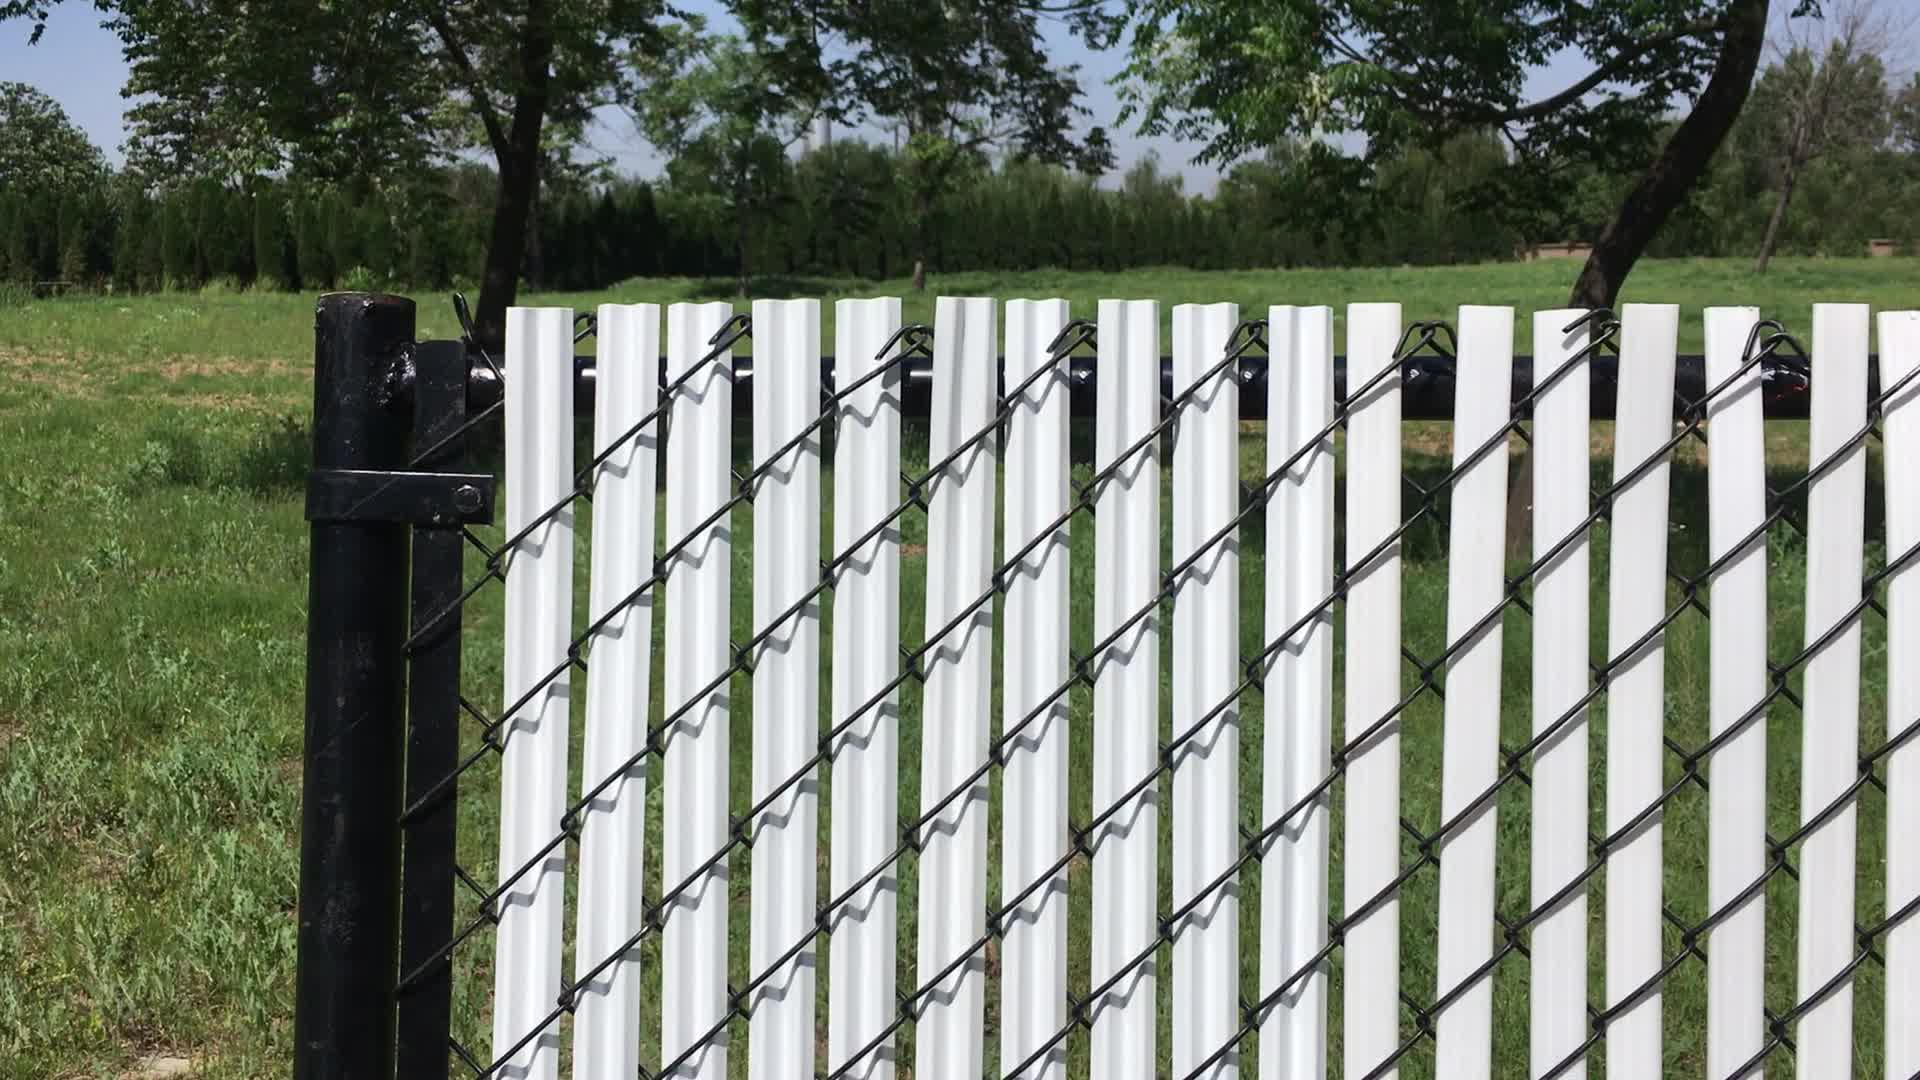 Best Decorative Diy Fence Inserts For Wire Fencing 8 Ft Buy This Month